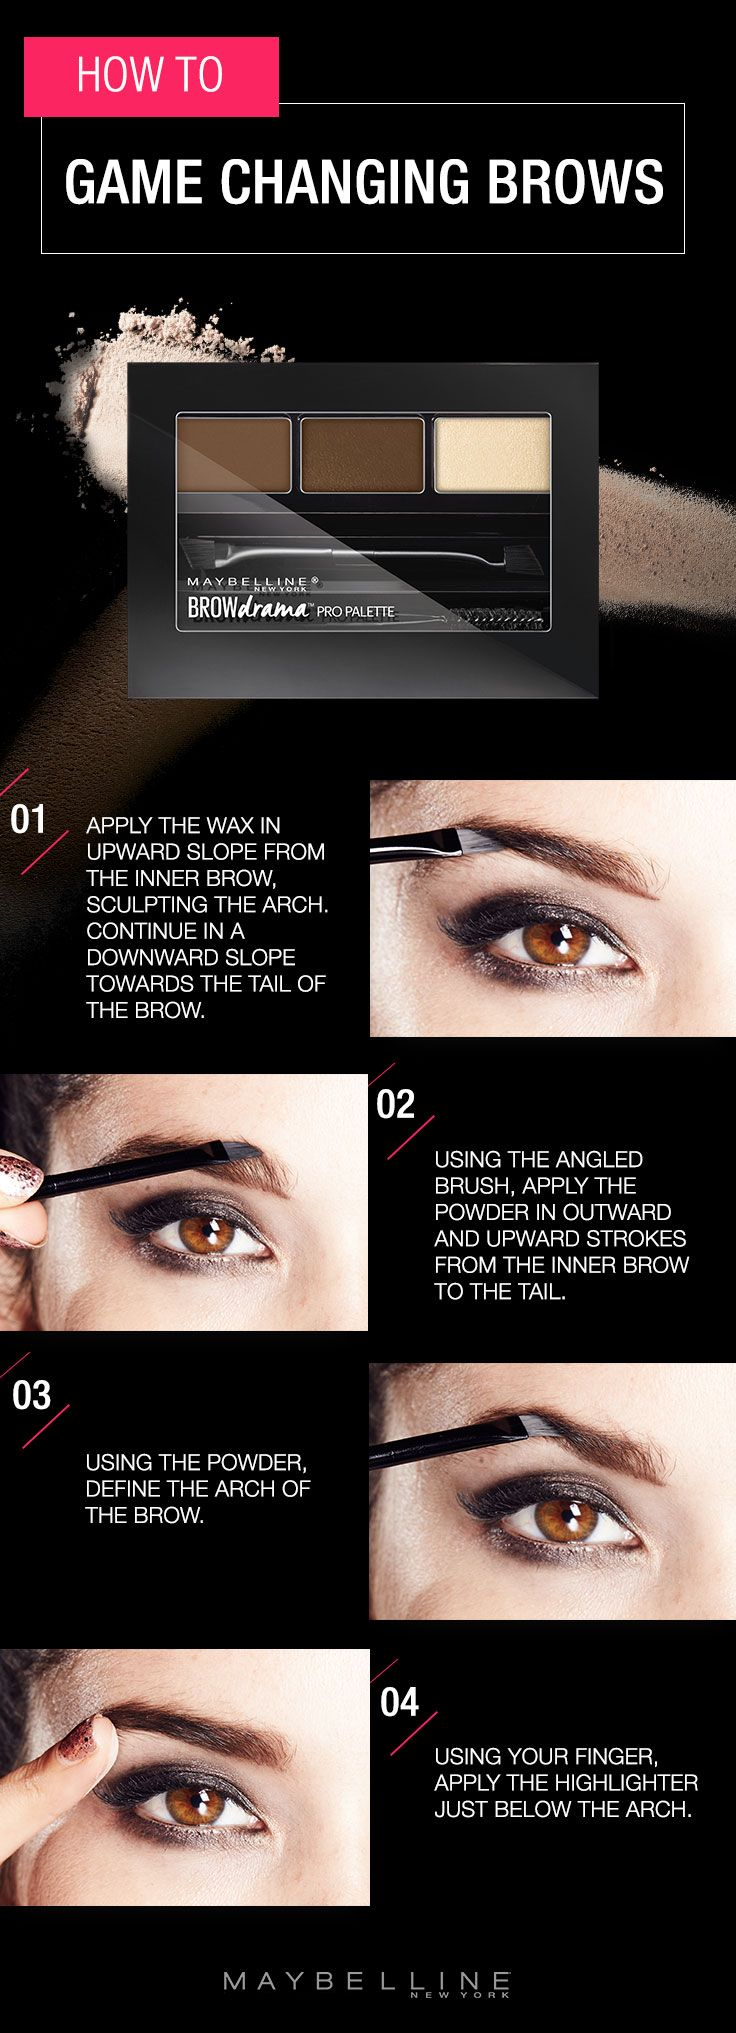 Here is how to have a serious brow shaping game with Maybelline Brow Drama Pro Palette following this step-by-step eye brow makeup tutorial. Start with defining your brows. Then fill them in. Complete the look by highlighting the arch of the brow for your boldest eye brows. Now you're ready to show off your perfect brows with any spring makeup look. Click for more product details.